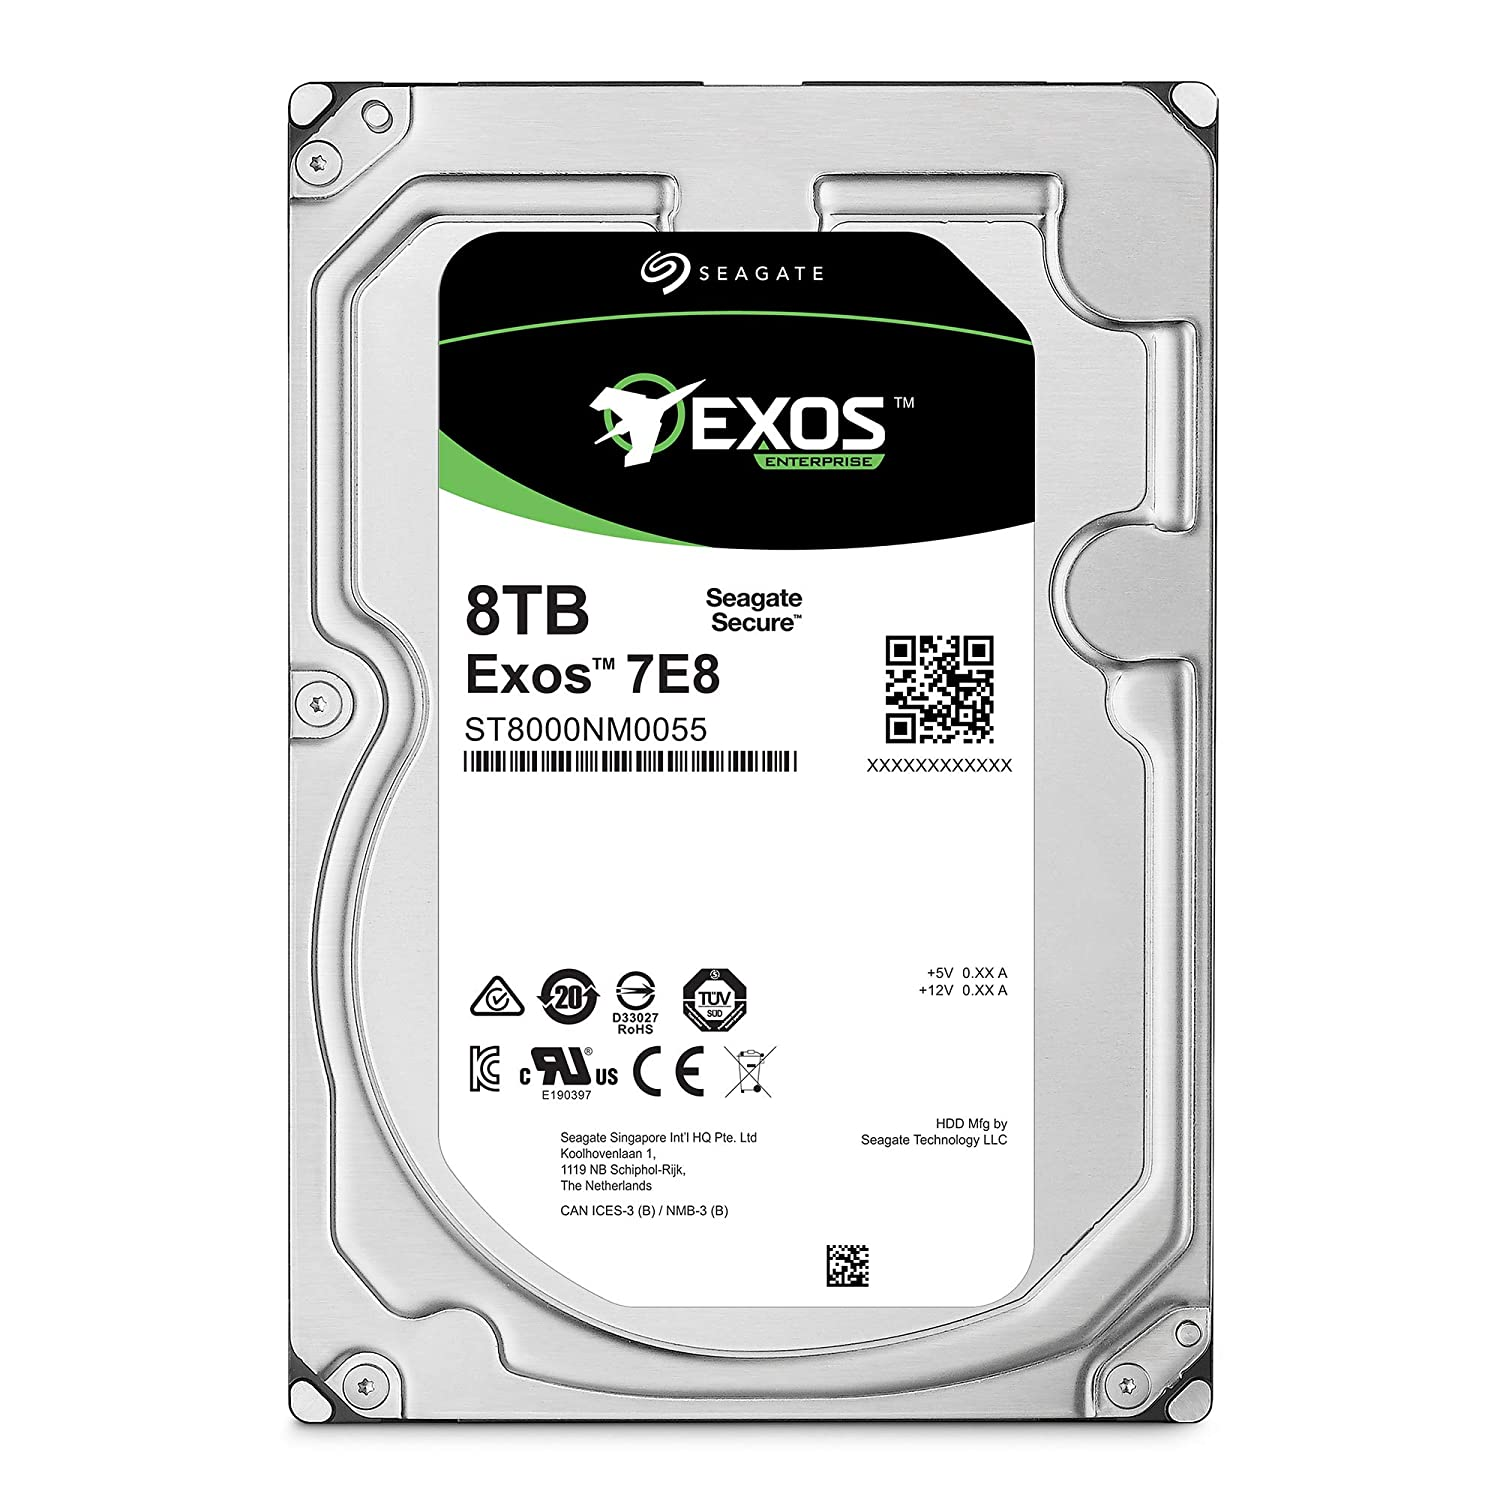 Seagate Exos 7E8 8TB Internal Hard Drive HDD – 3.5 Inch 6Gb/s 7200 RPM 128MB Cache for Enterprise, Data Center – Frustration Free Packaging (ST8000NM0055)